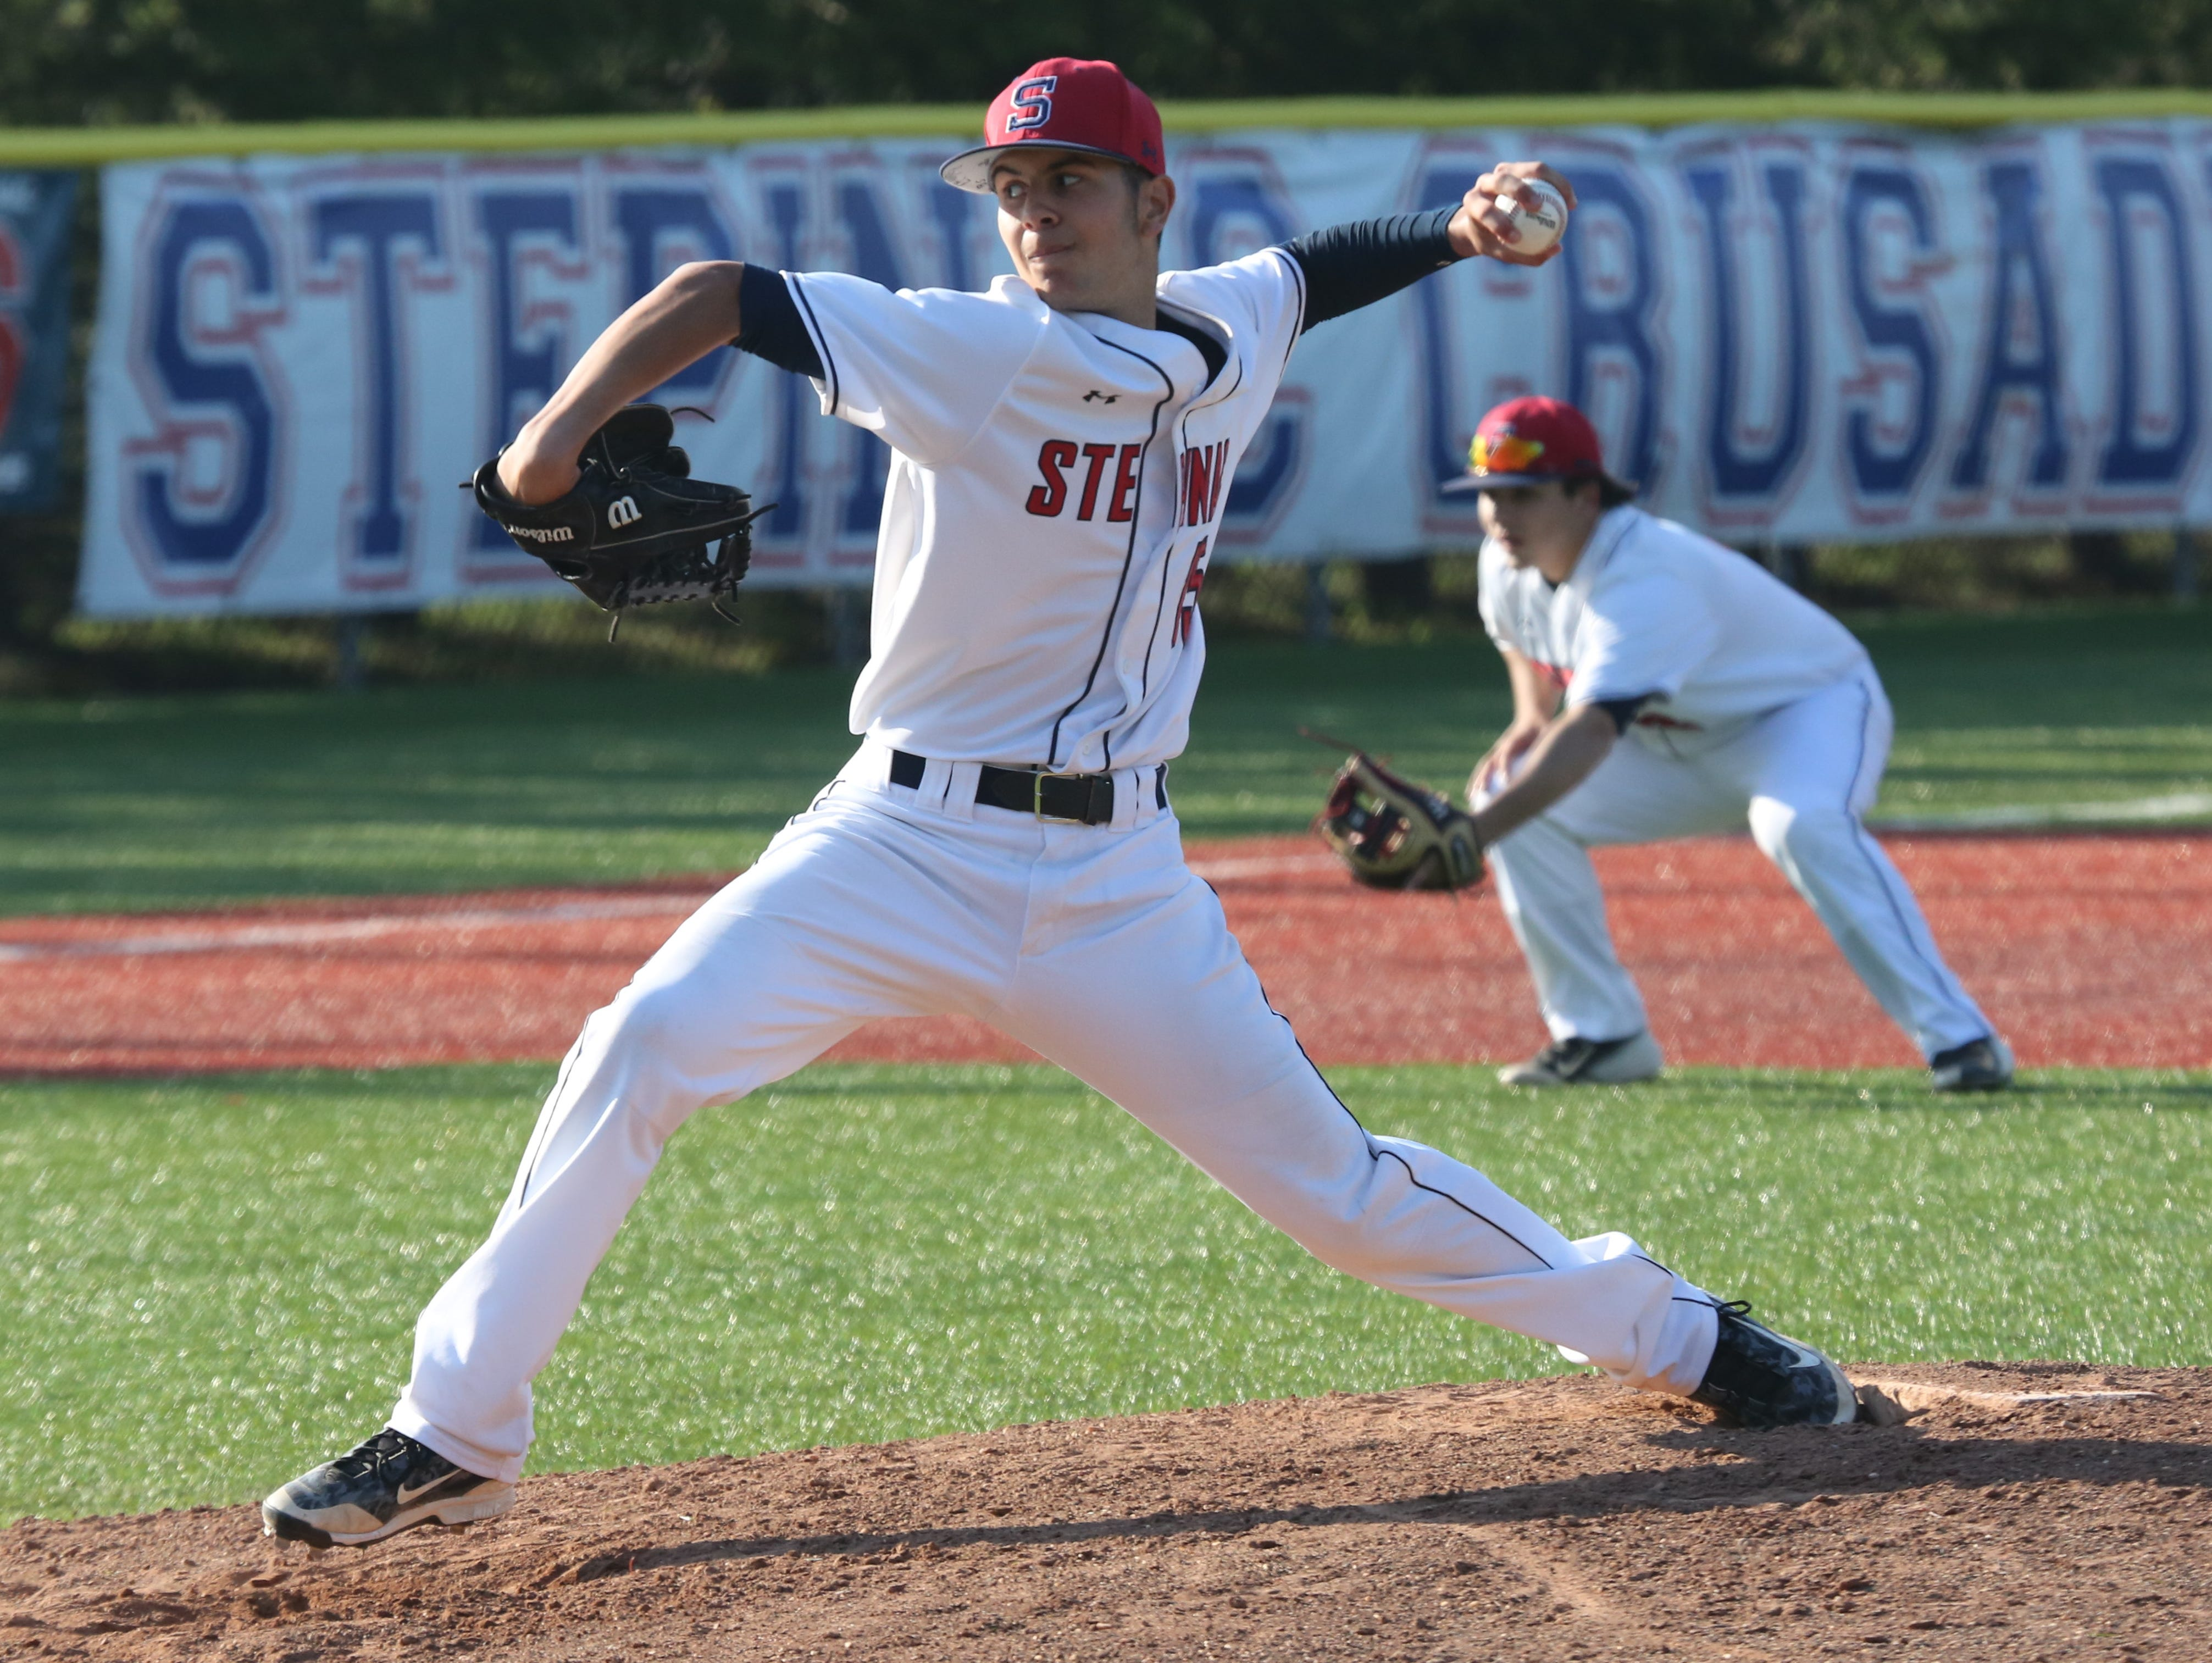 Archbishop Stepinac pitcher Austin Mercado delivers a pitch against Iona Prep during their baseball game at Stepinac in White Plains, April 27, 2016.